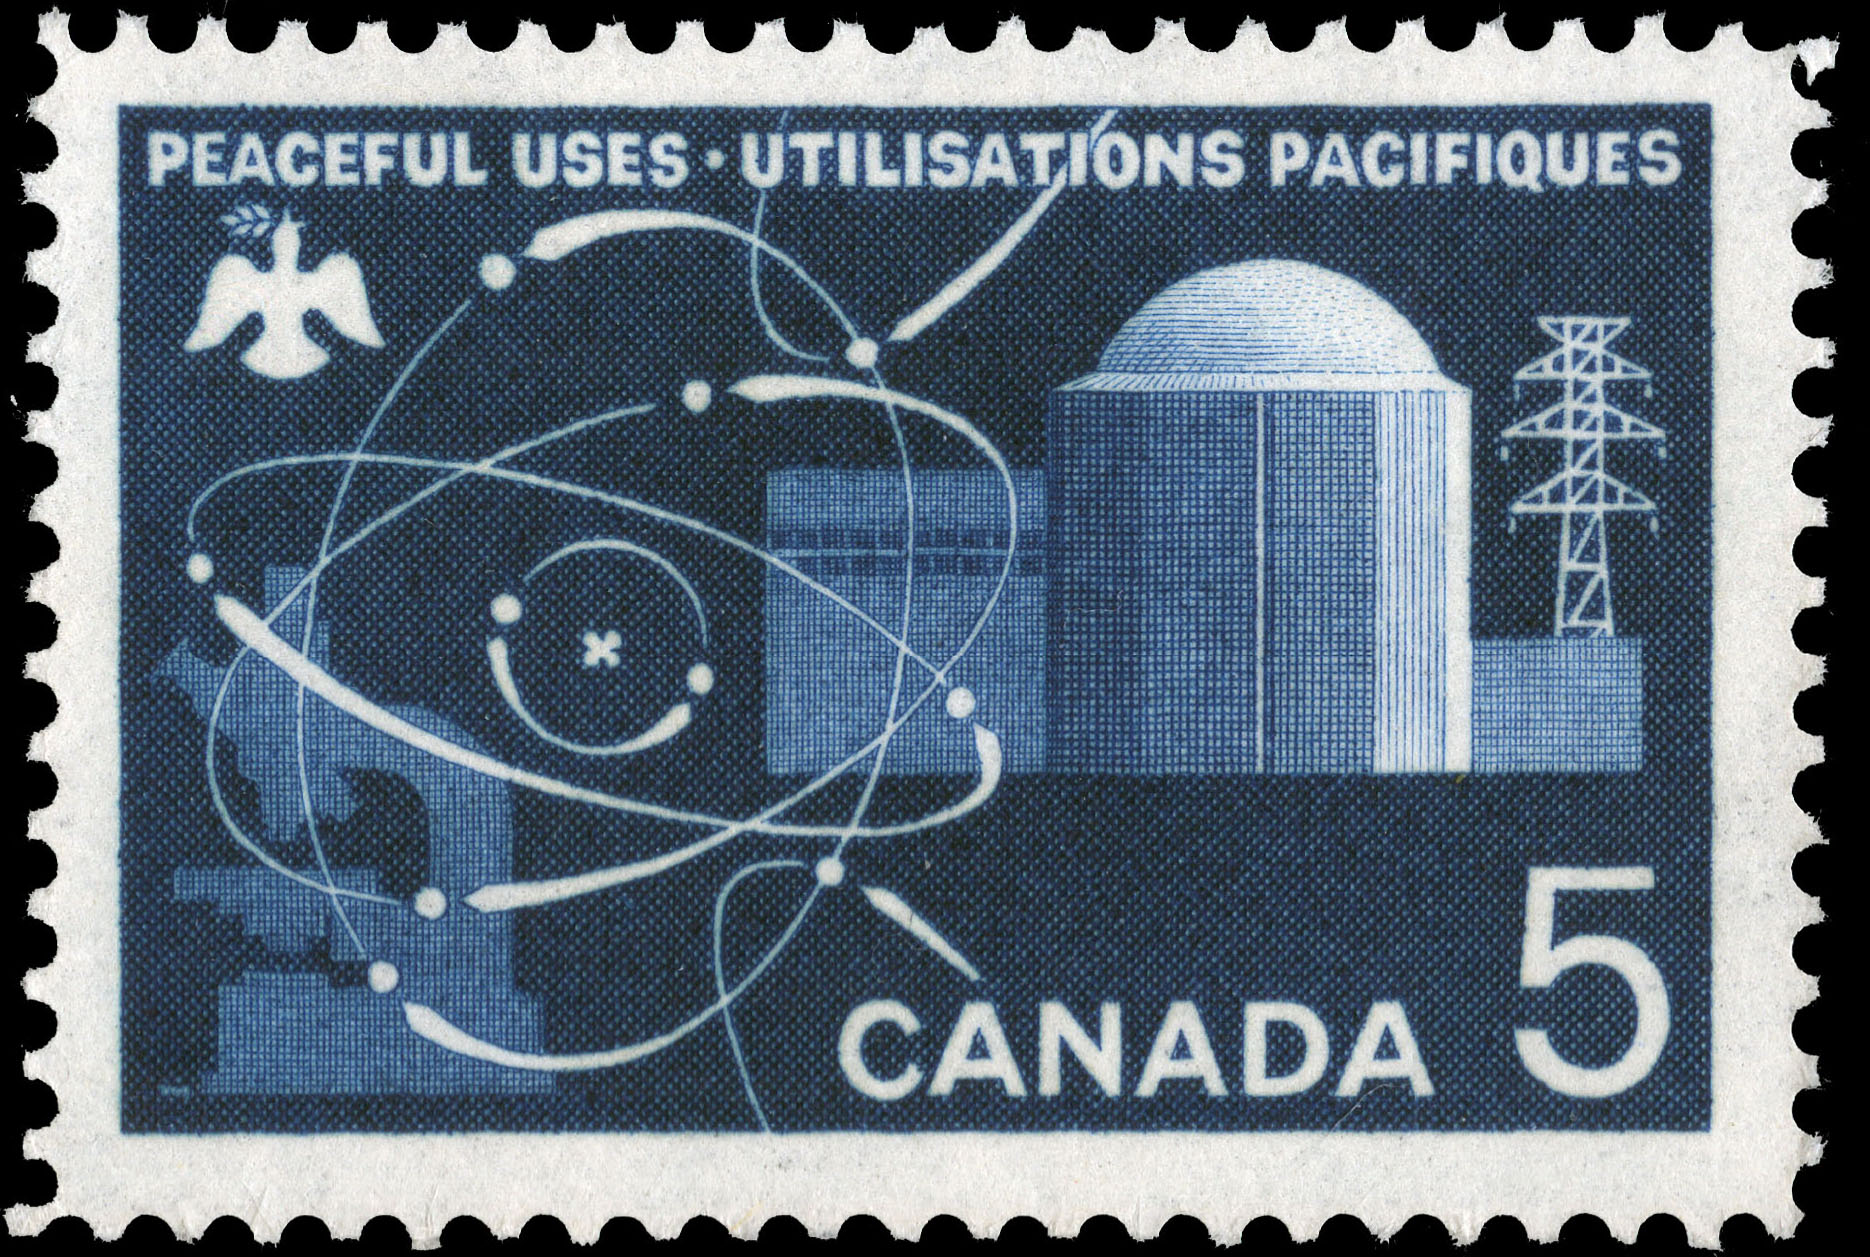 Peaceful Uses, Atomic Energy Canada Postage Stamp